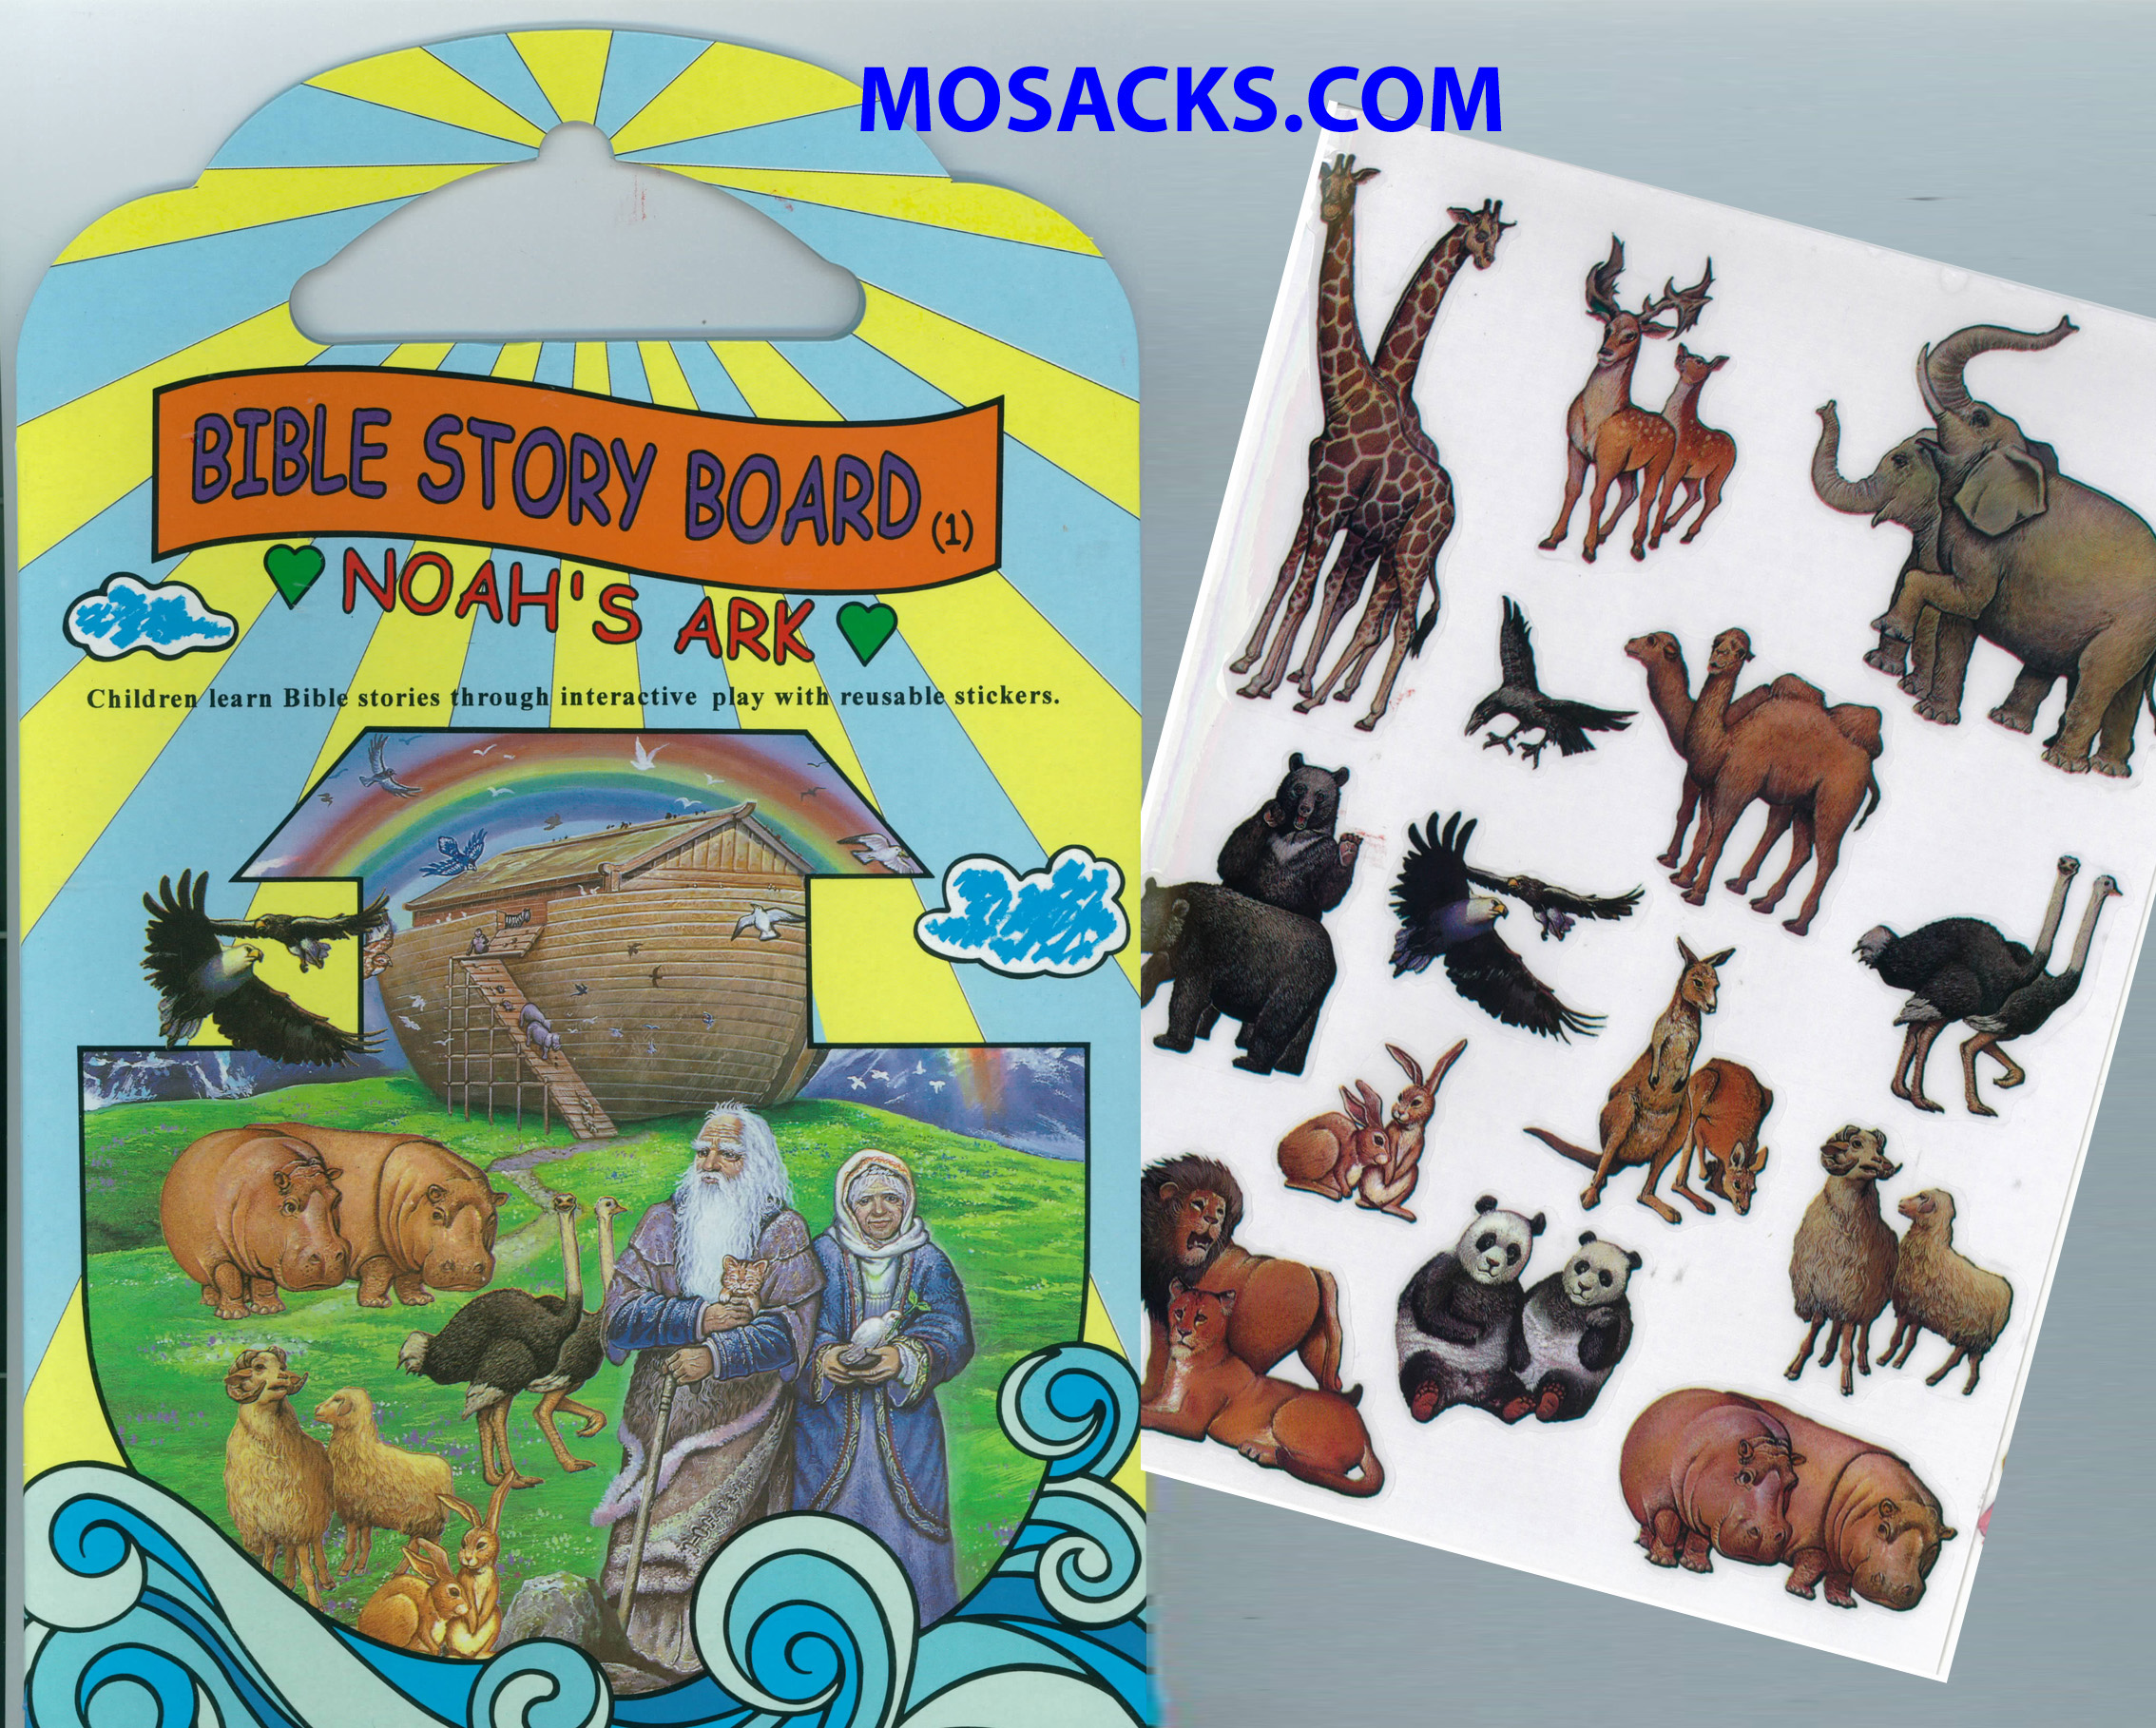 Bible Story Board Noah's Ark 64-NOAH